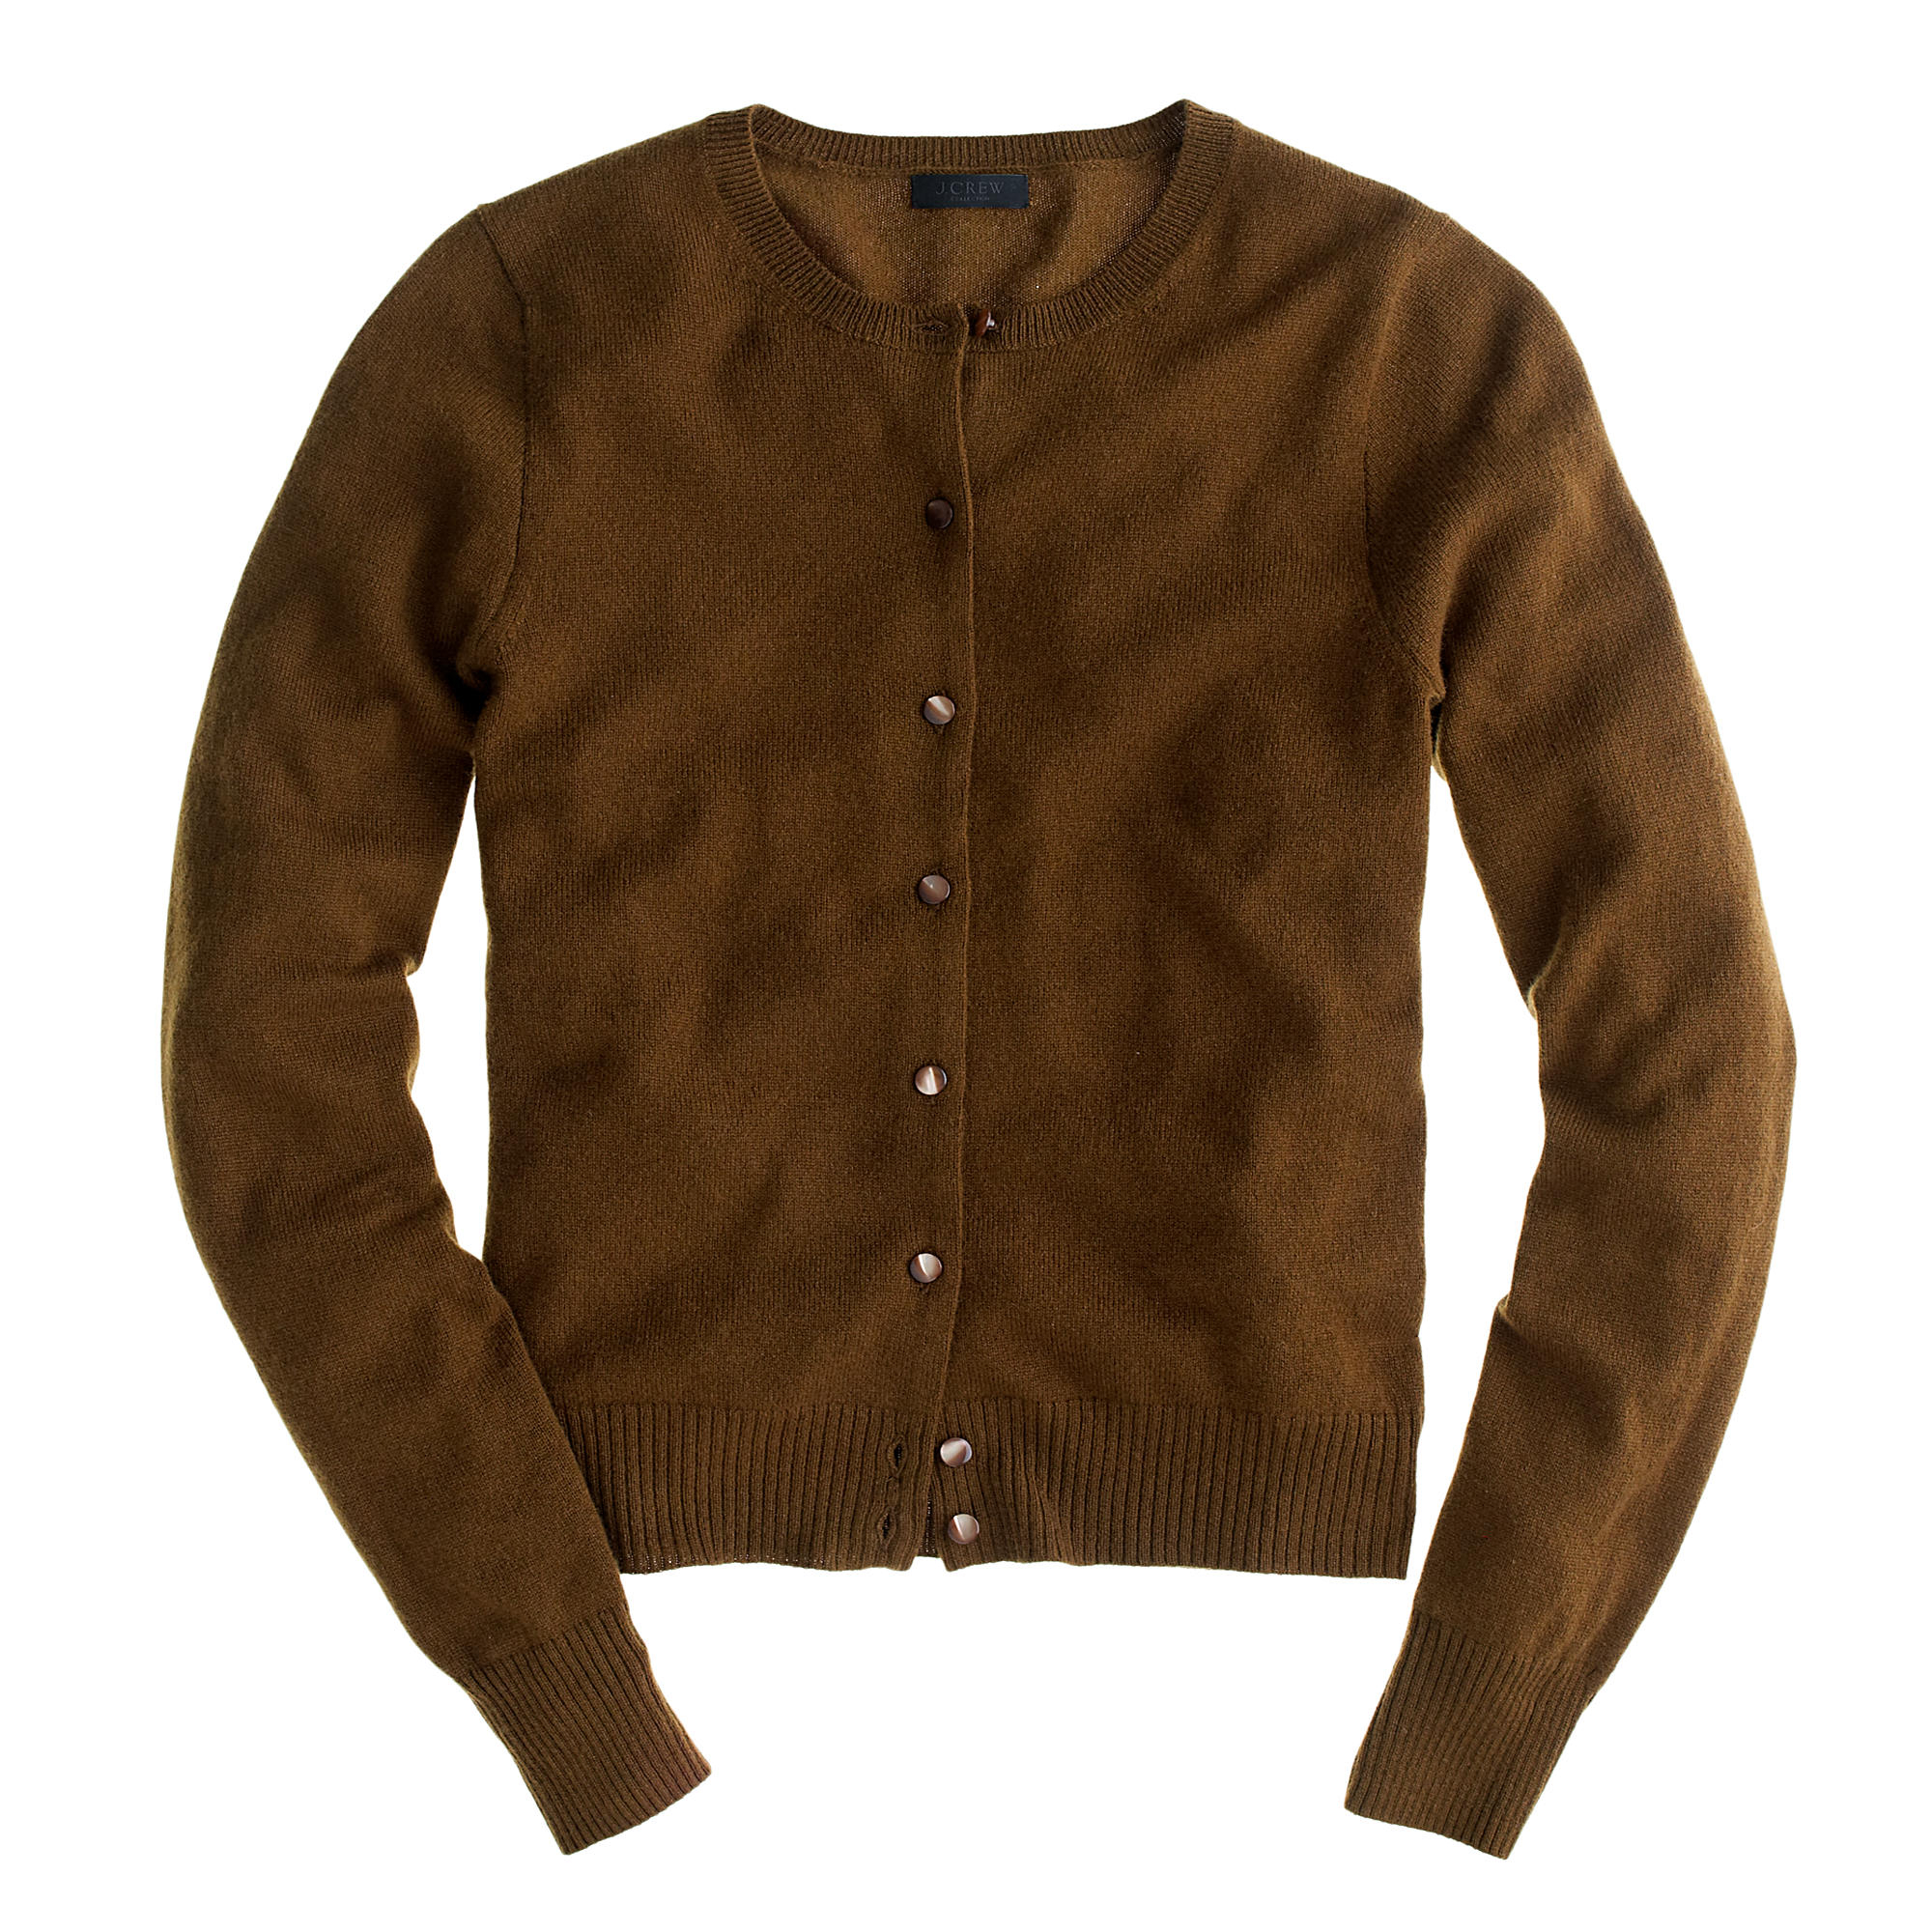 J.crew Collection Cashmere Cardigan Sweater in Brown | Lyst